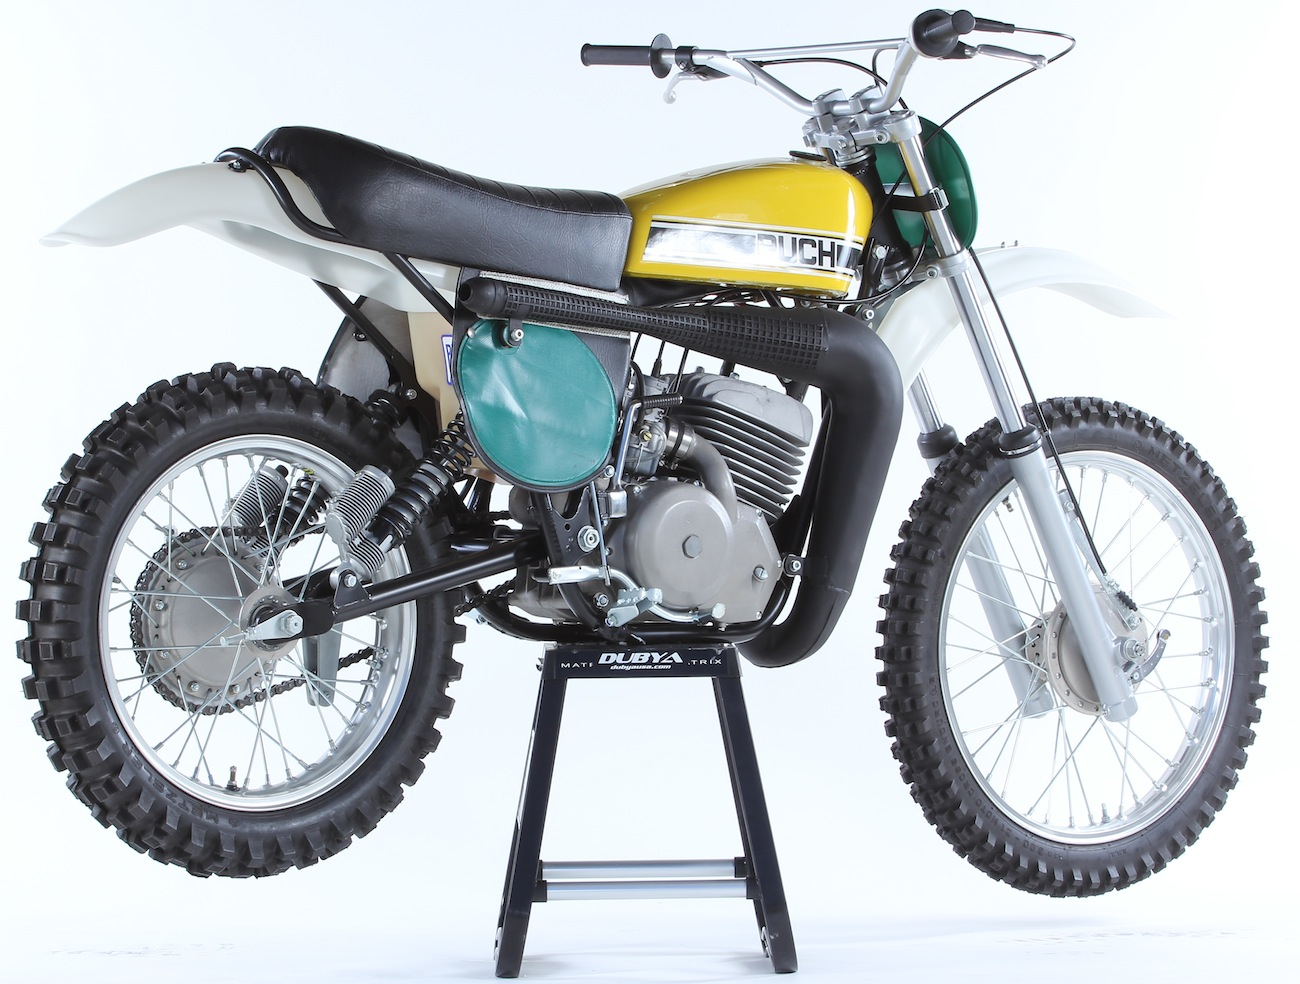 Classic motocross iron 1976 puch mc250 twin carbmotocross action in a huge leap puch hired belgium motocross rider harry everts to race the 1974 250 world championship on a tottally new machine everts finished third in sciox Gallery